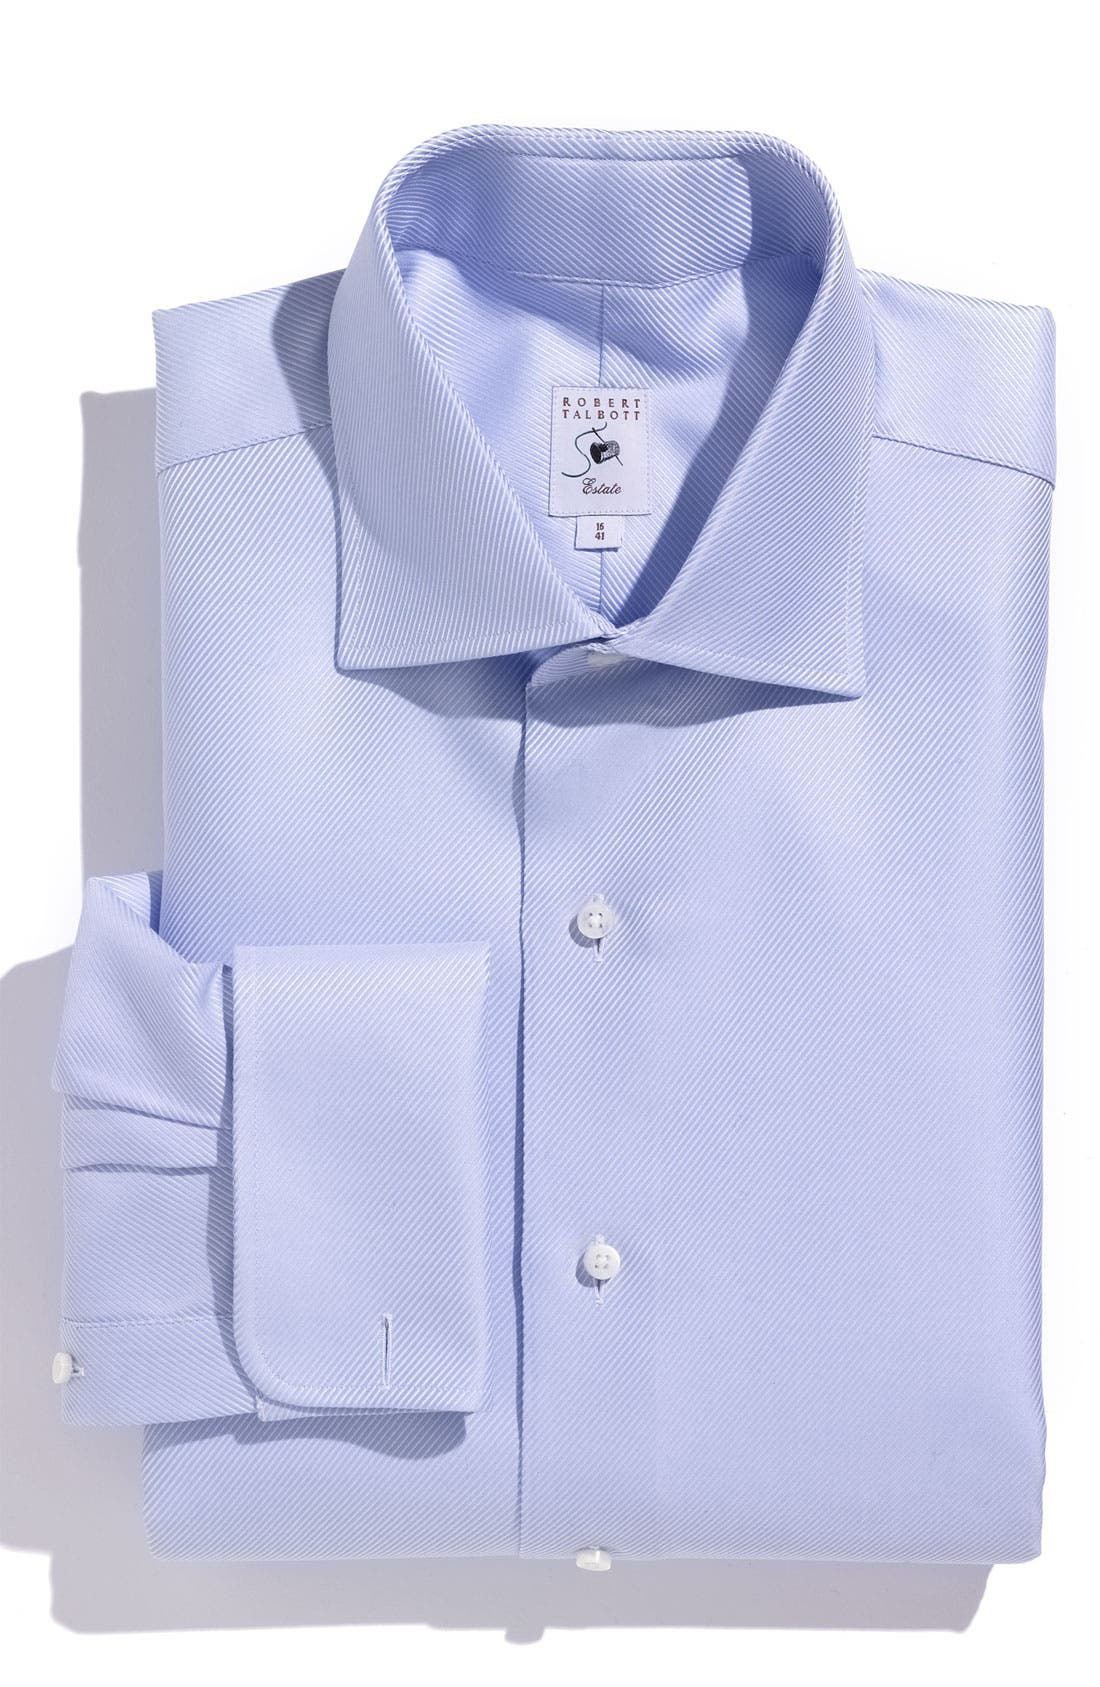 Main Image - Robert Talbott Regular Fit Estate Dress Shirt (Online Exclusive)